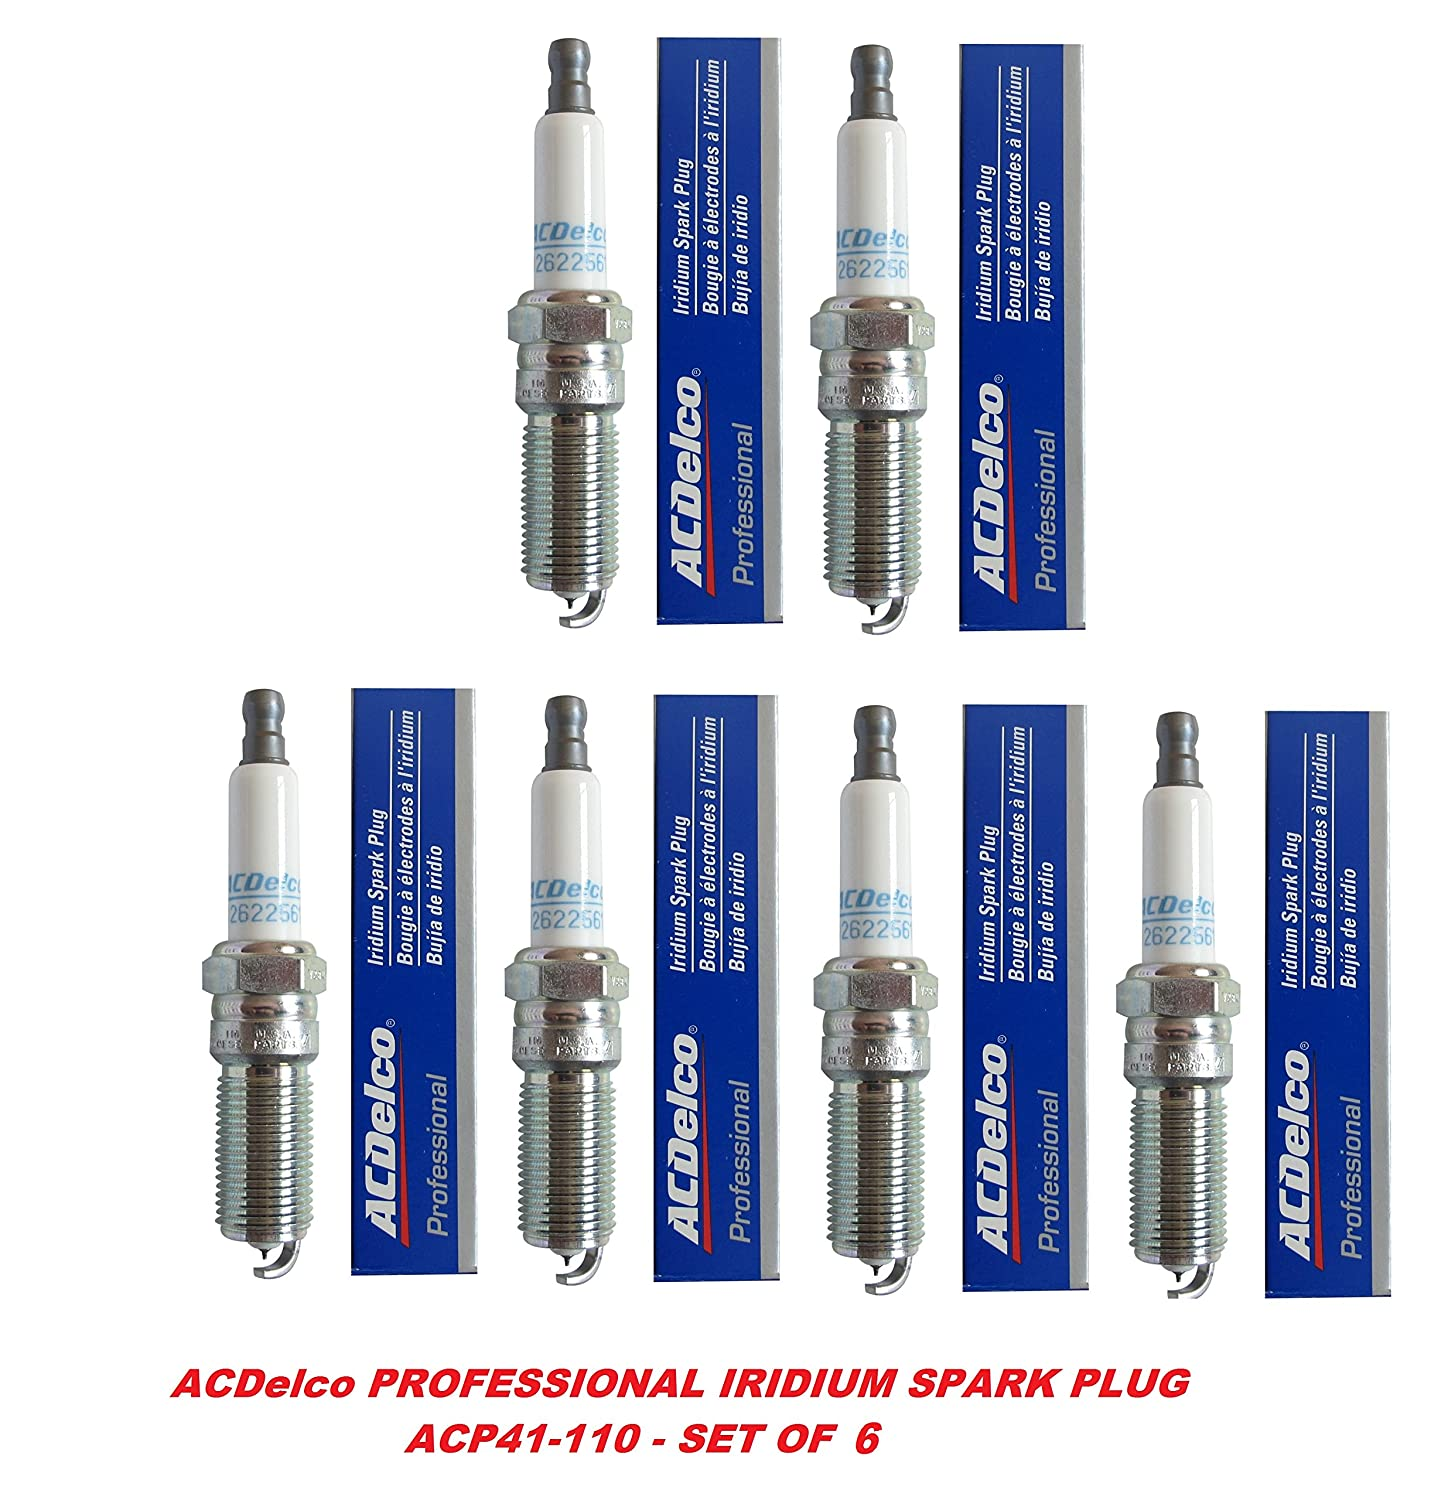 Amazon.com: Acdelco 41-110 OEM Gm 12621258 Professional Iridium Spark Plug - Set of 6: Automotive